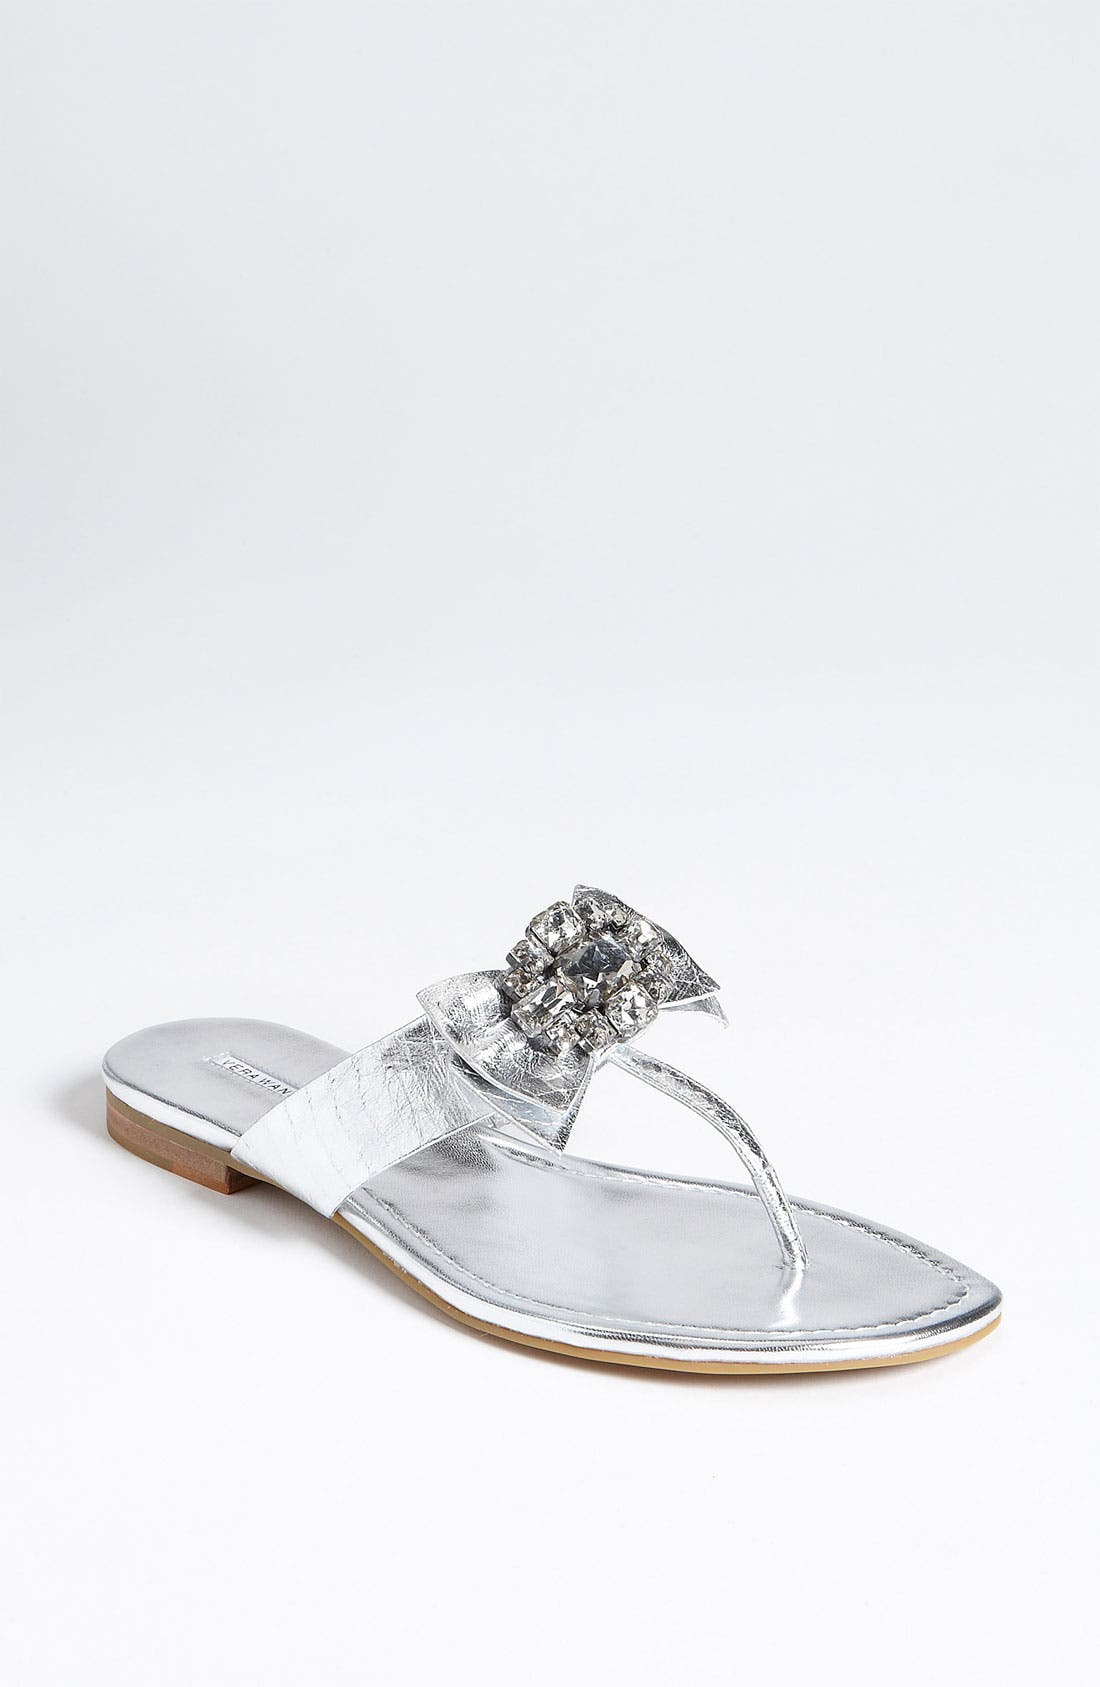 Alternate Image 1 Selected - Vera Wang Footwear 'Willa' Sandal